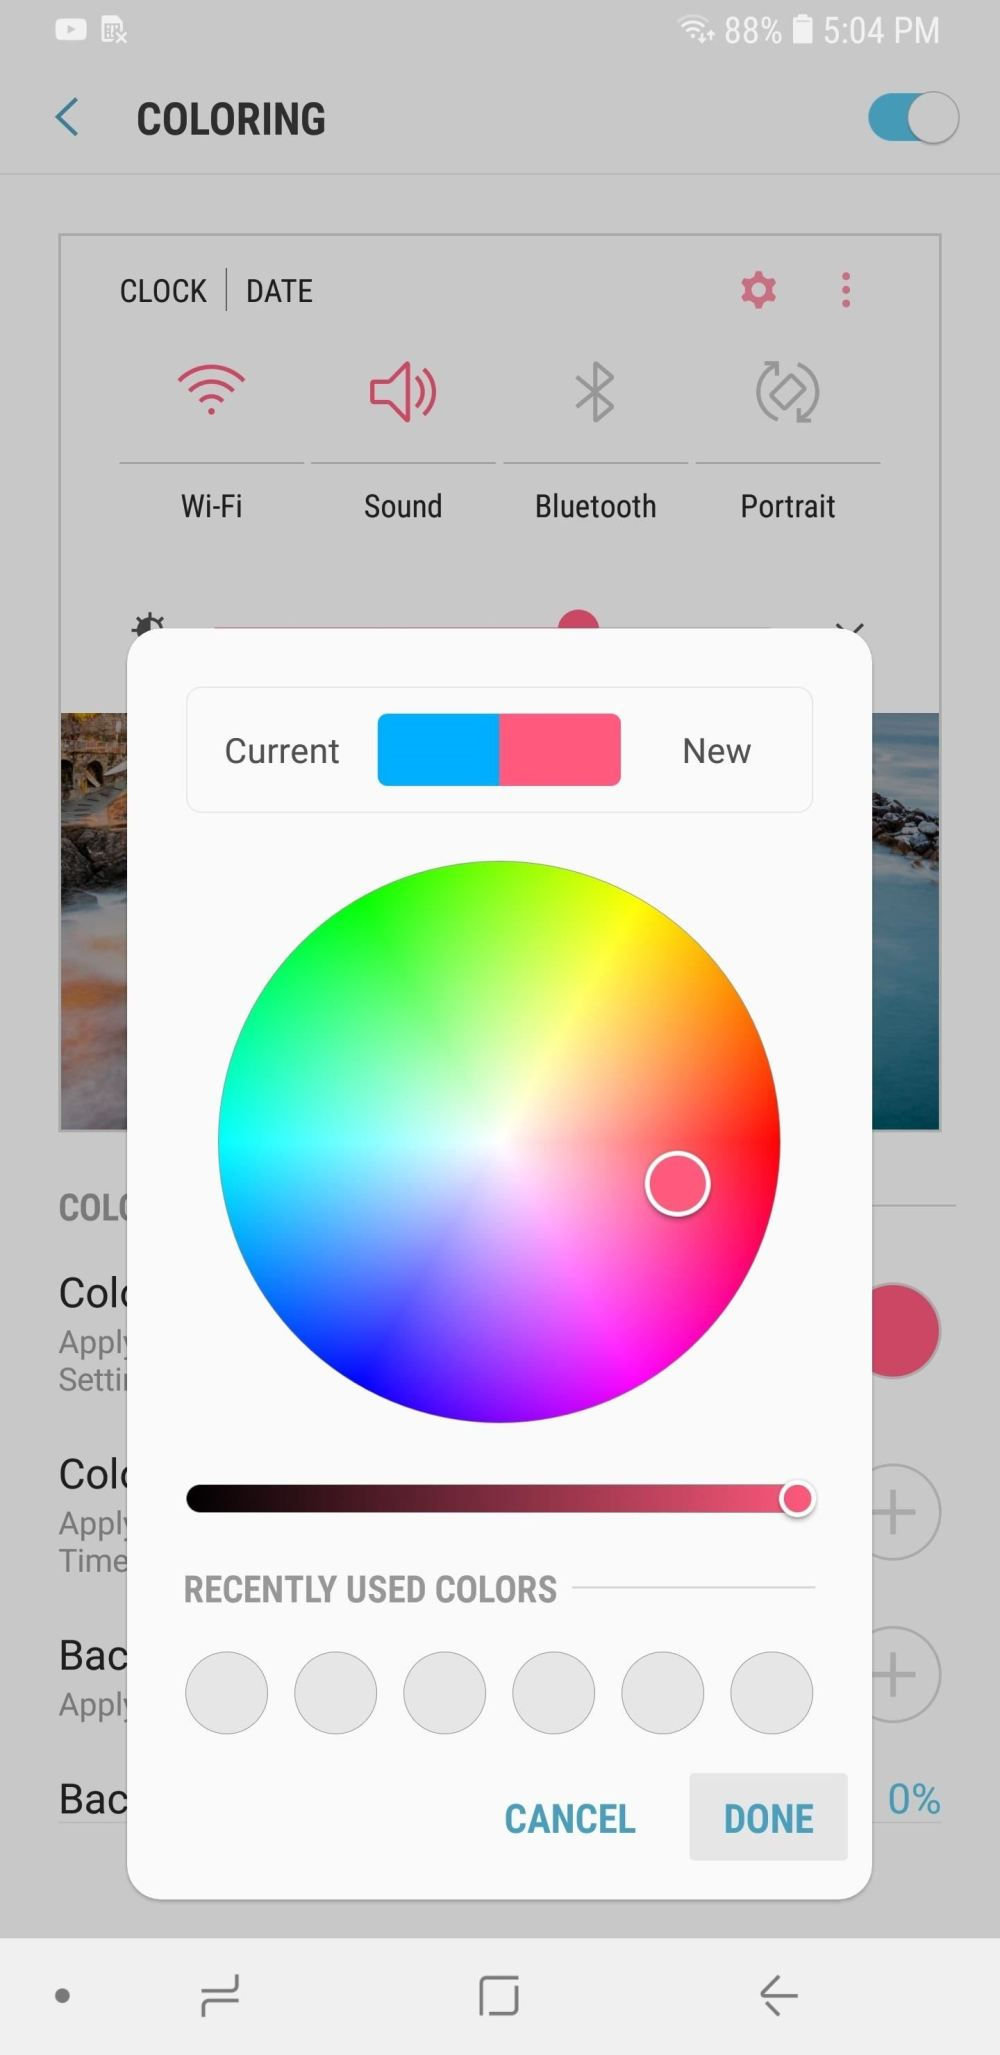 medium resolution of selecting color 2 will yield the same option as color 1 but this time you get to set your desired color for the icons within quick settings panel that